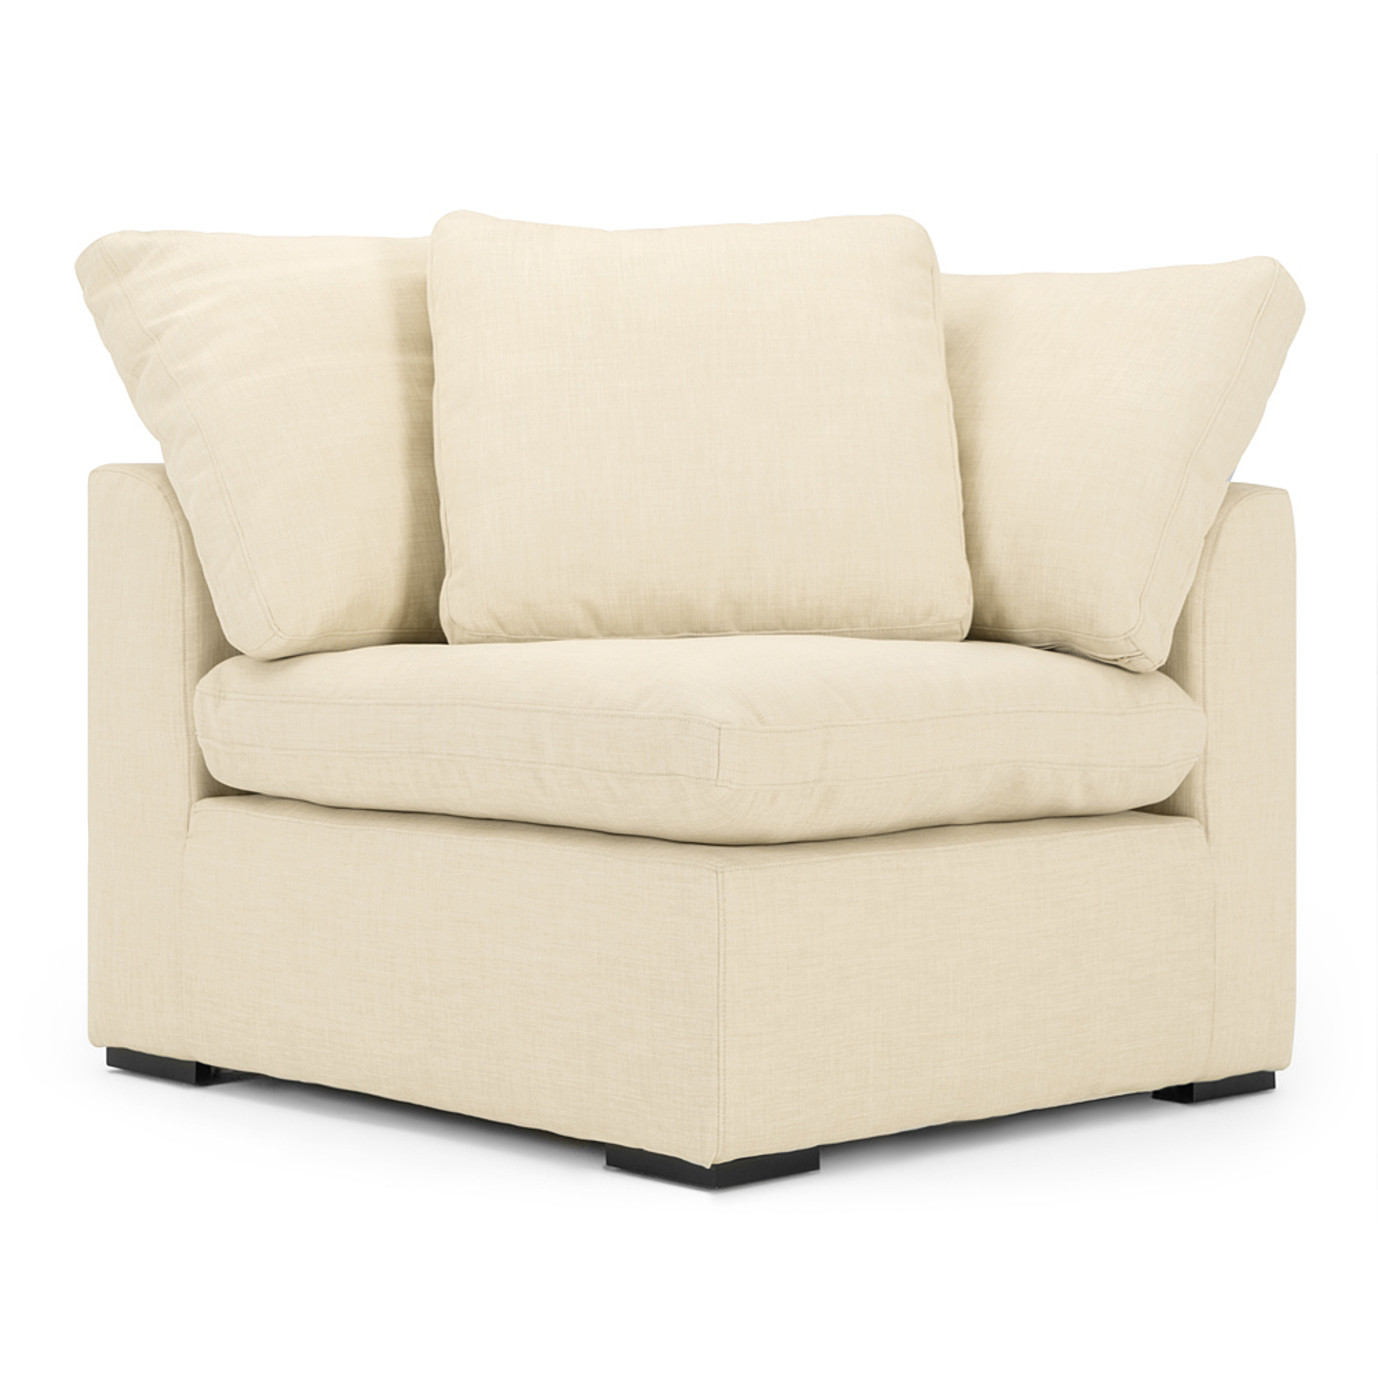 Aria 6pc Seating Set - Beige